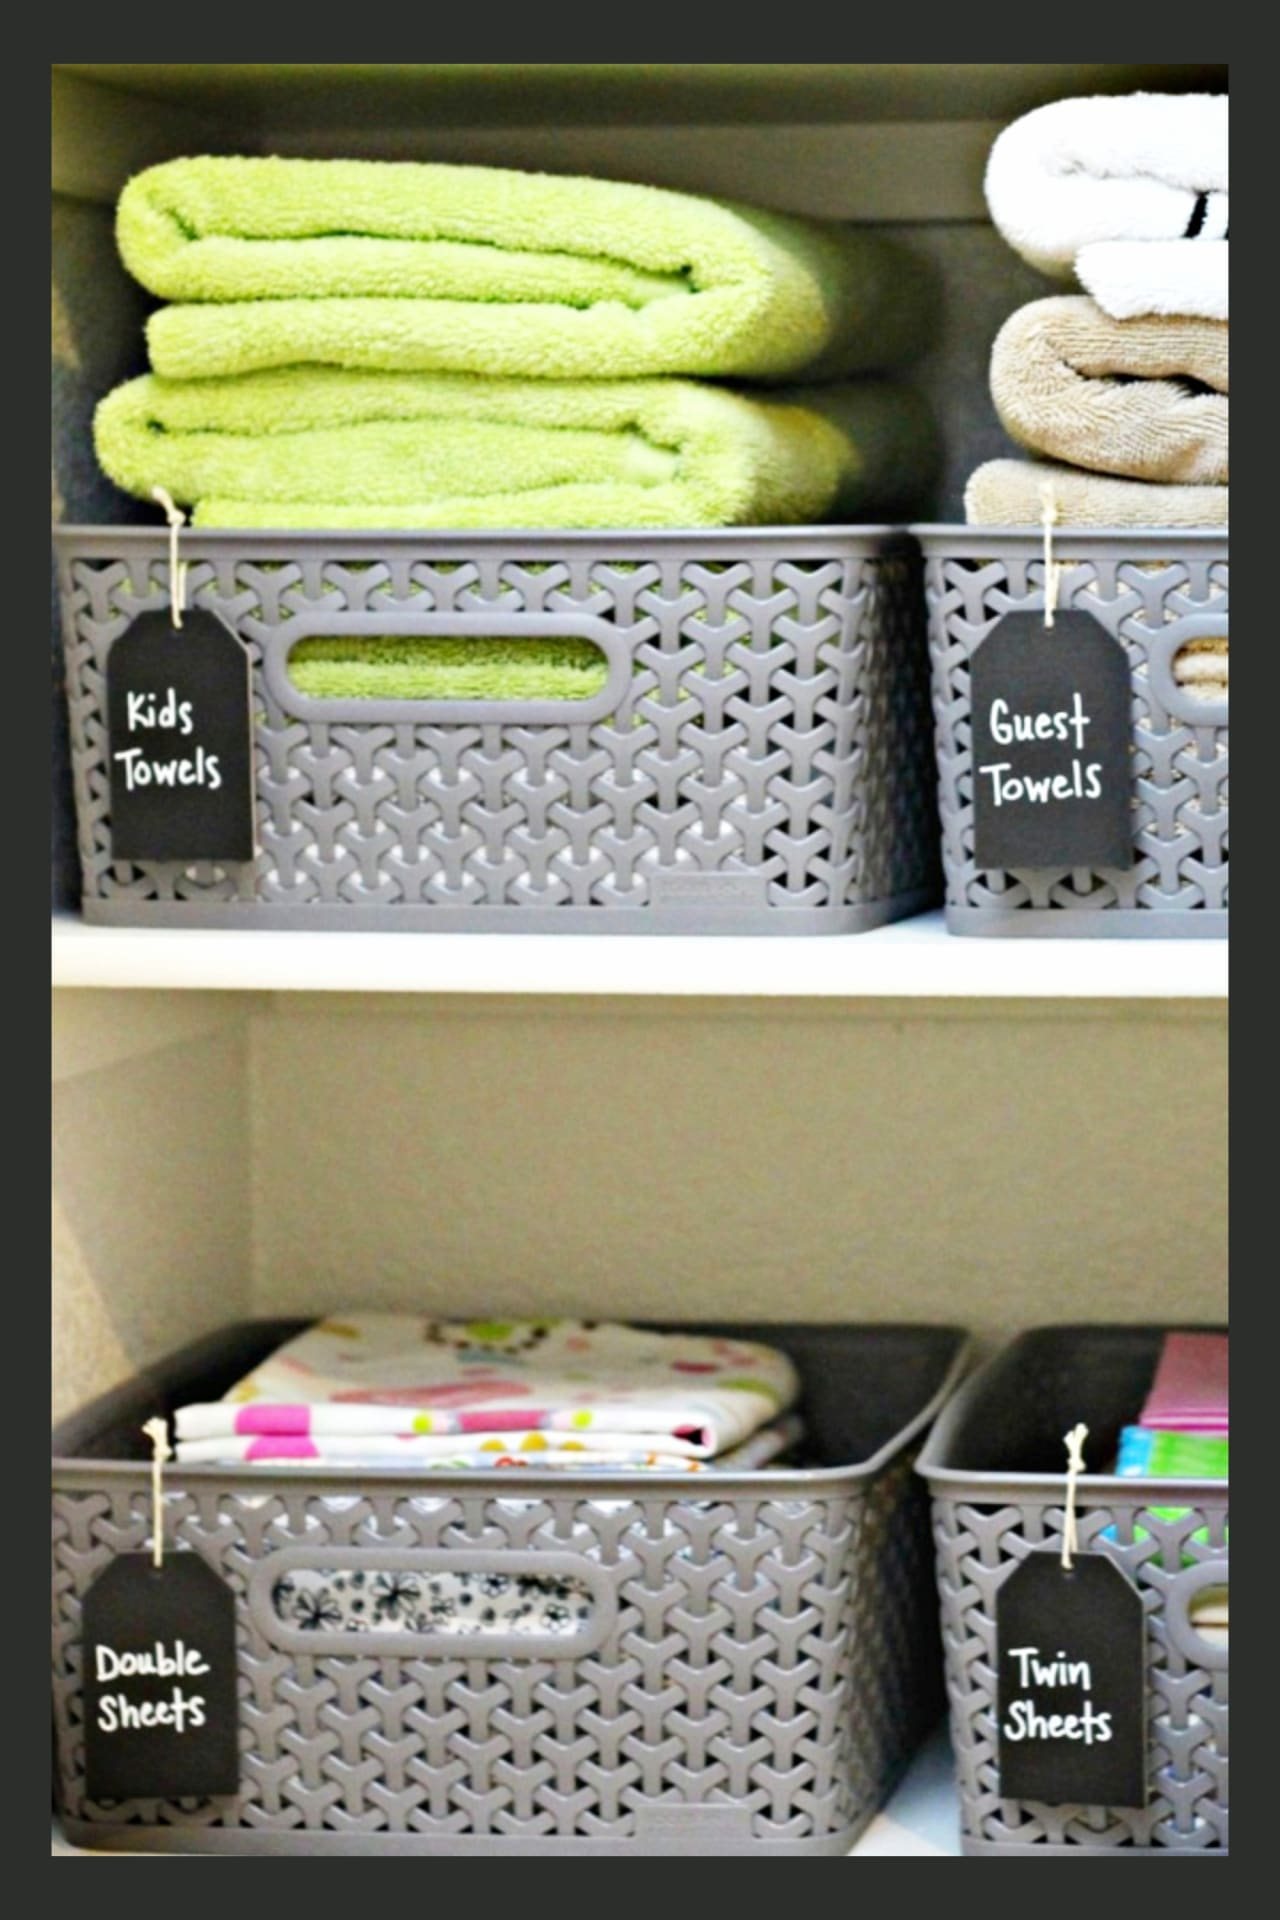 Organizing with baskets!  Use cheap dollar tree or dollar stores baskets to organize your linen closet.  Such creative storage solutions for small spaces - especially if you're on a budget